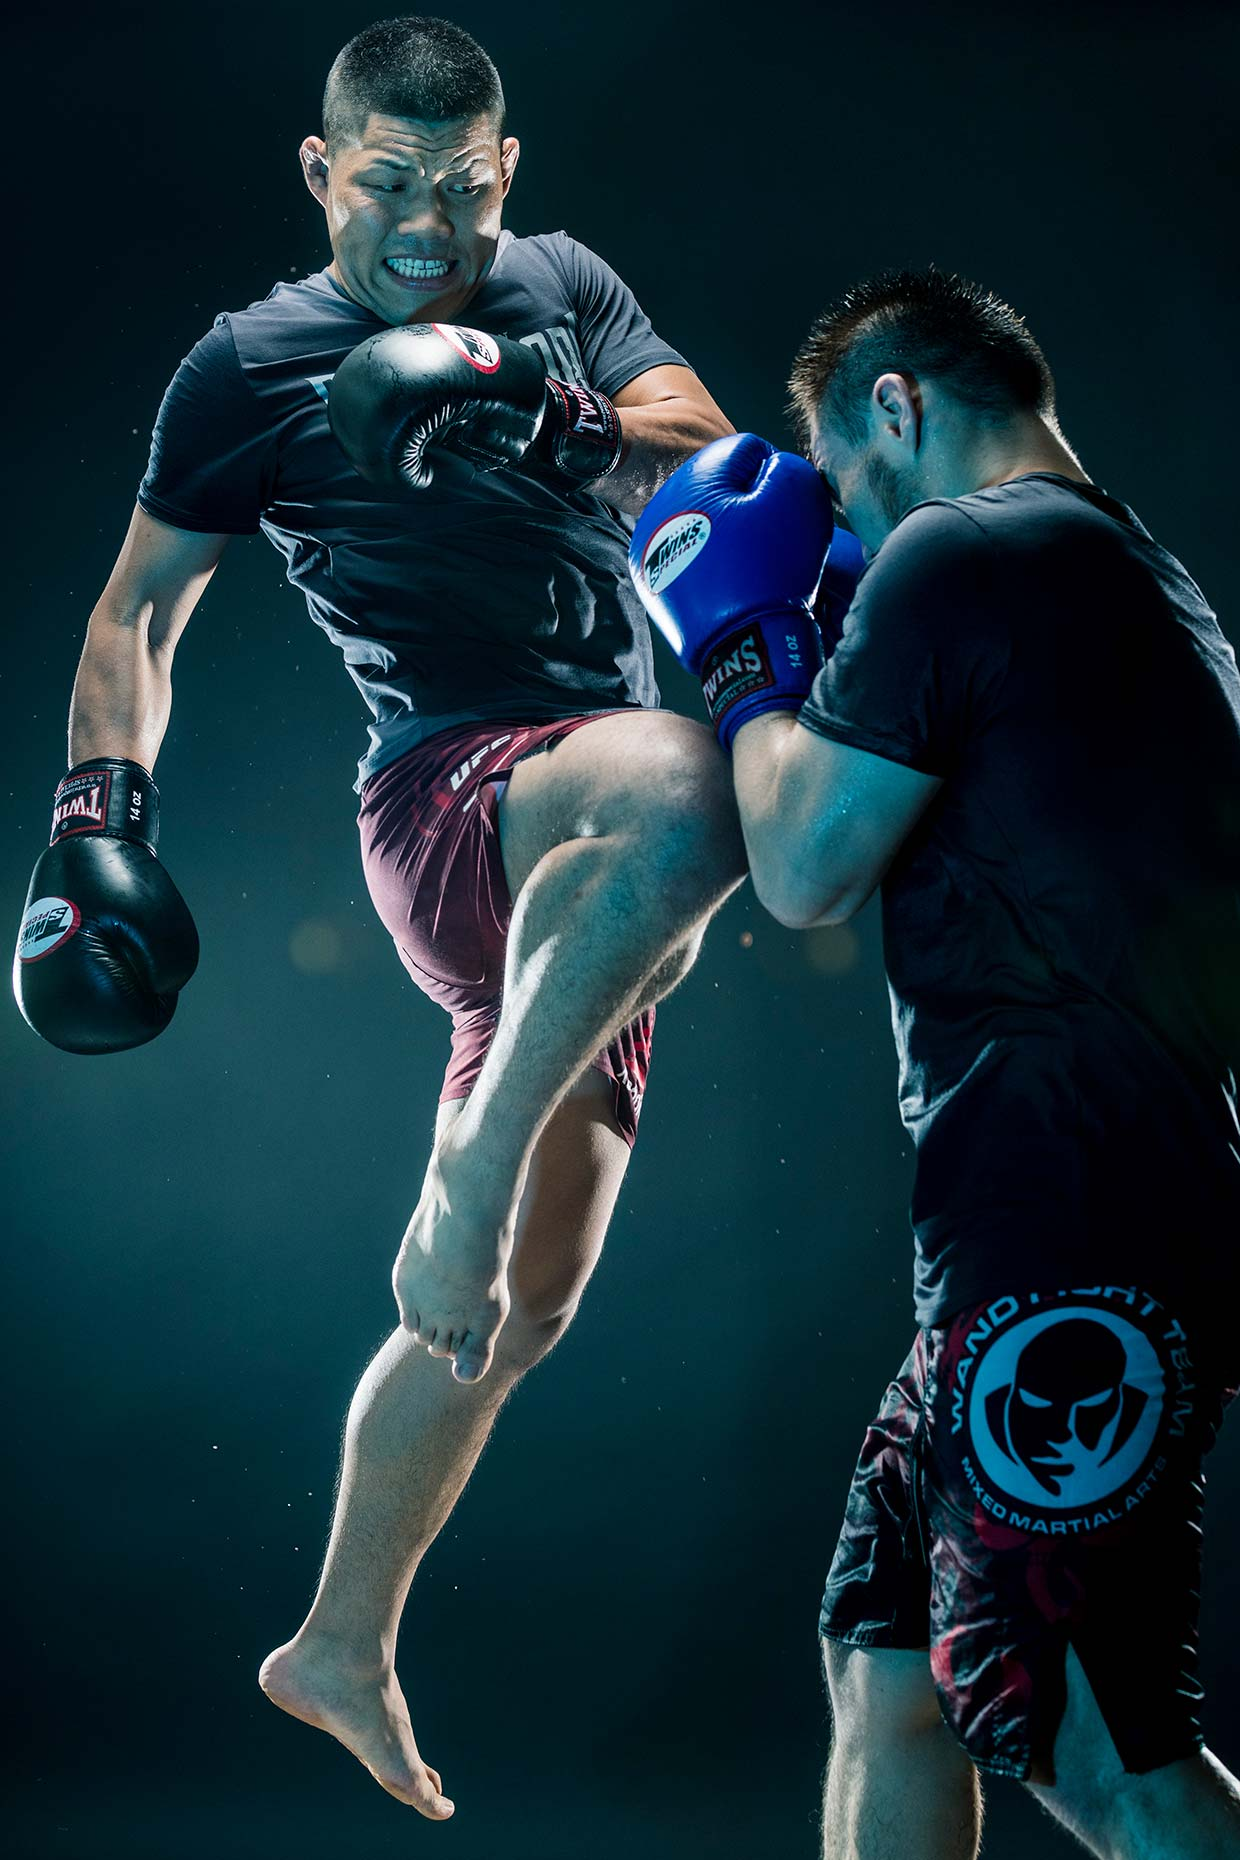 MMA_StefenChow_Sports_04